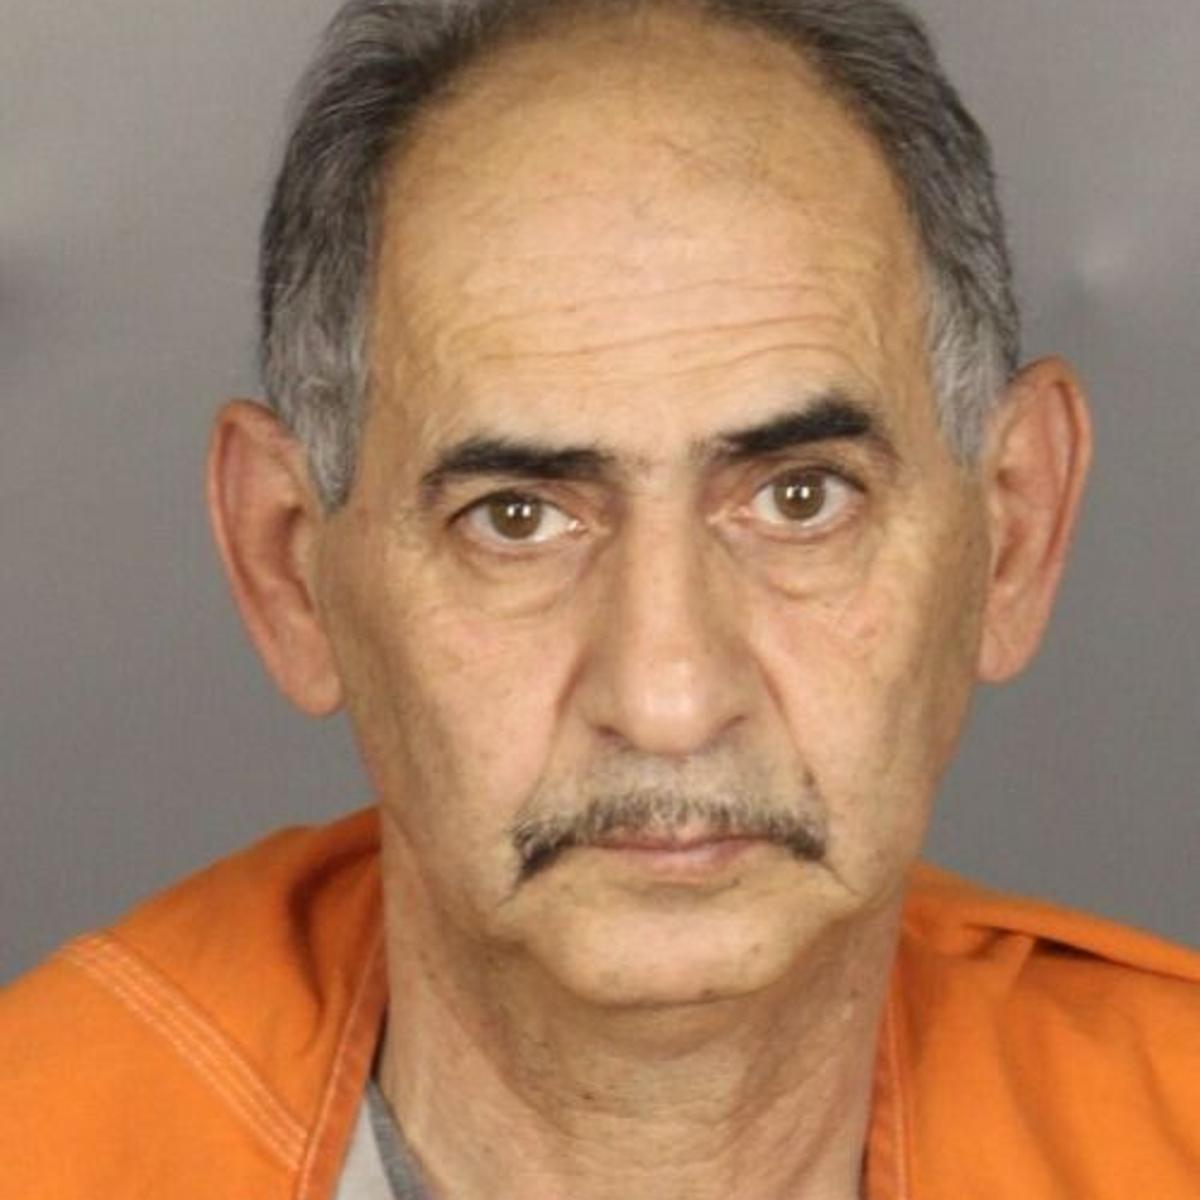 Store owner sentenced to 12 years for selling synthetic